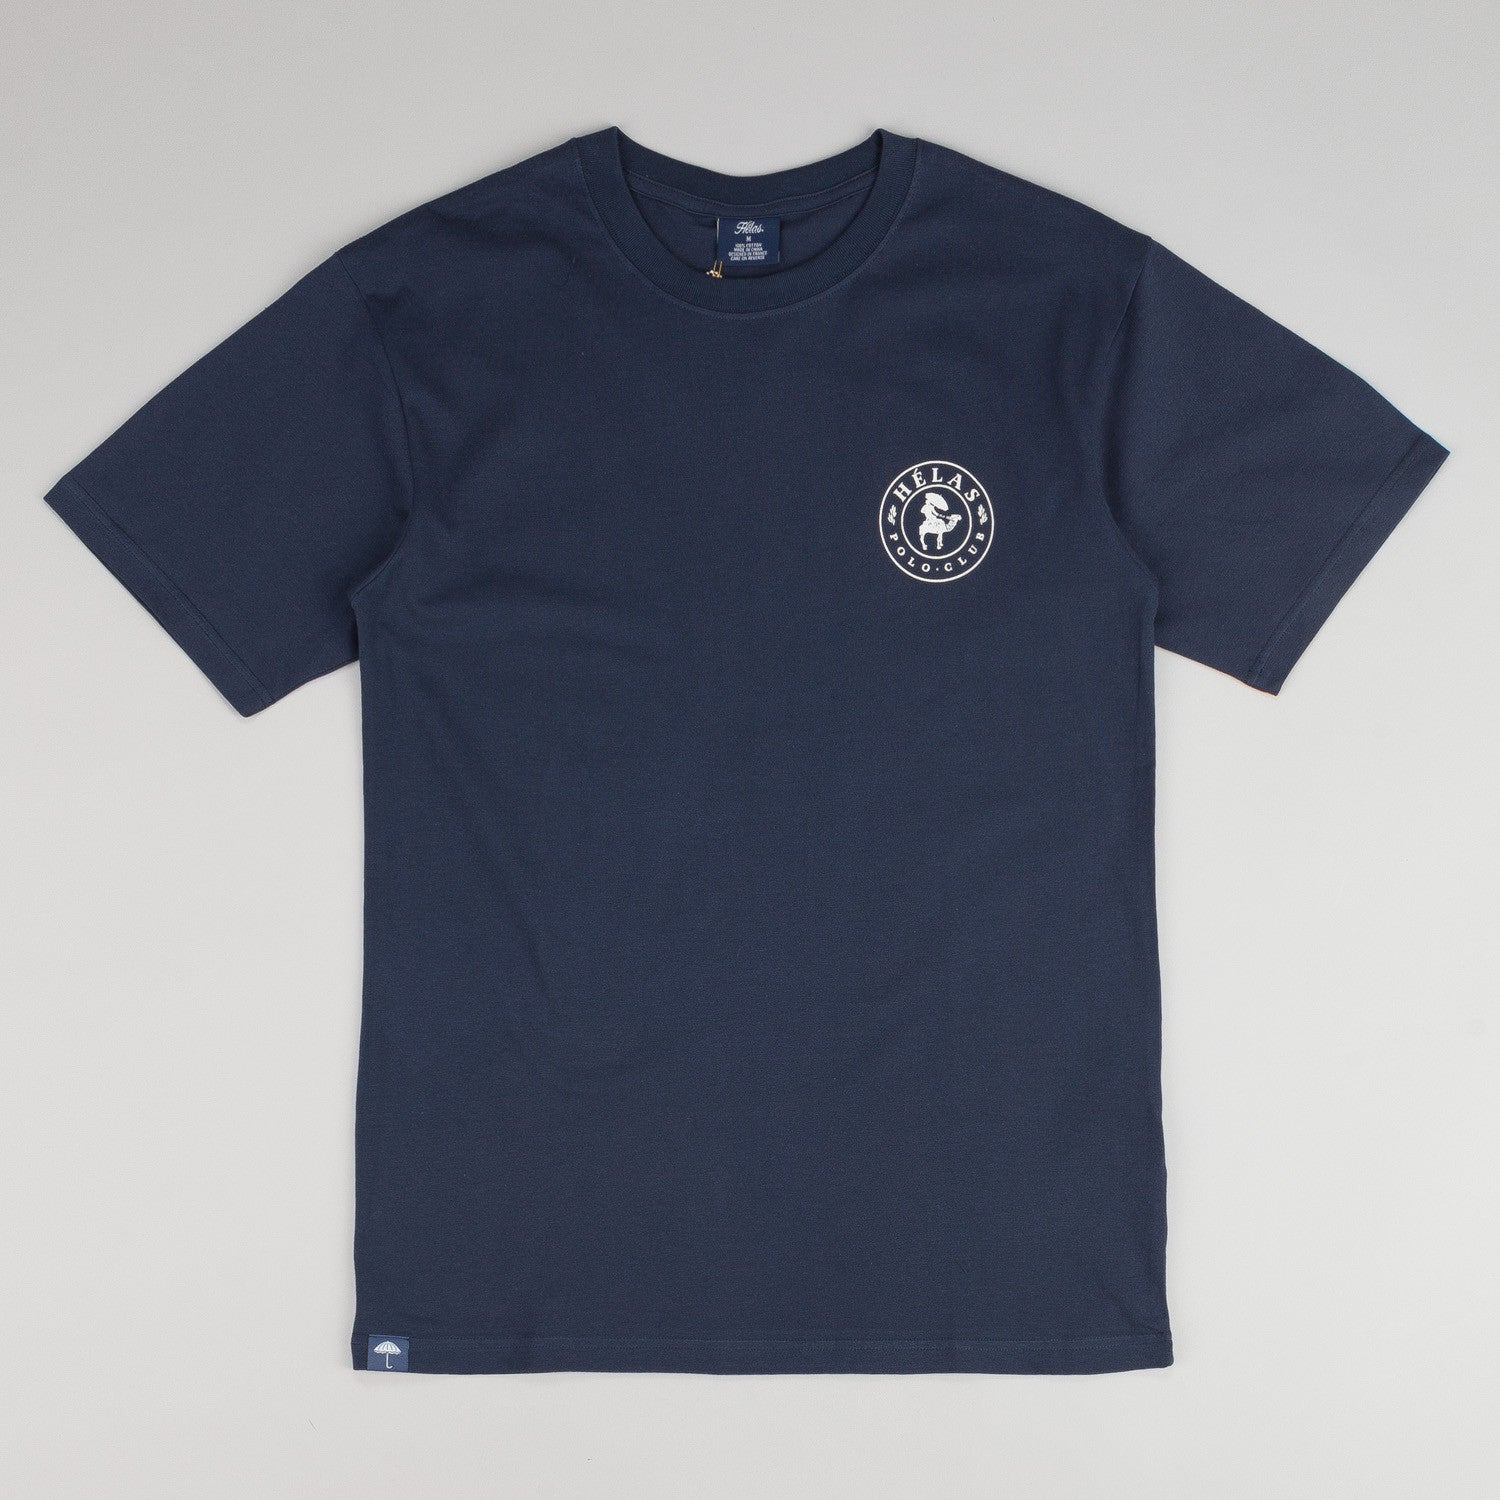 Helas Polo Club T-Shirt